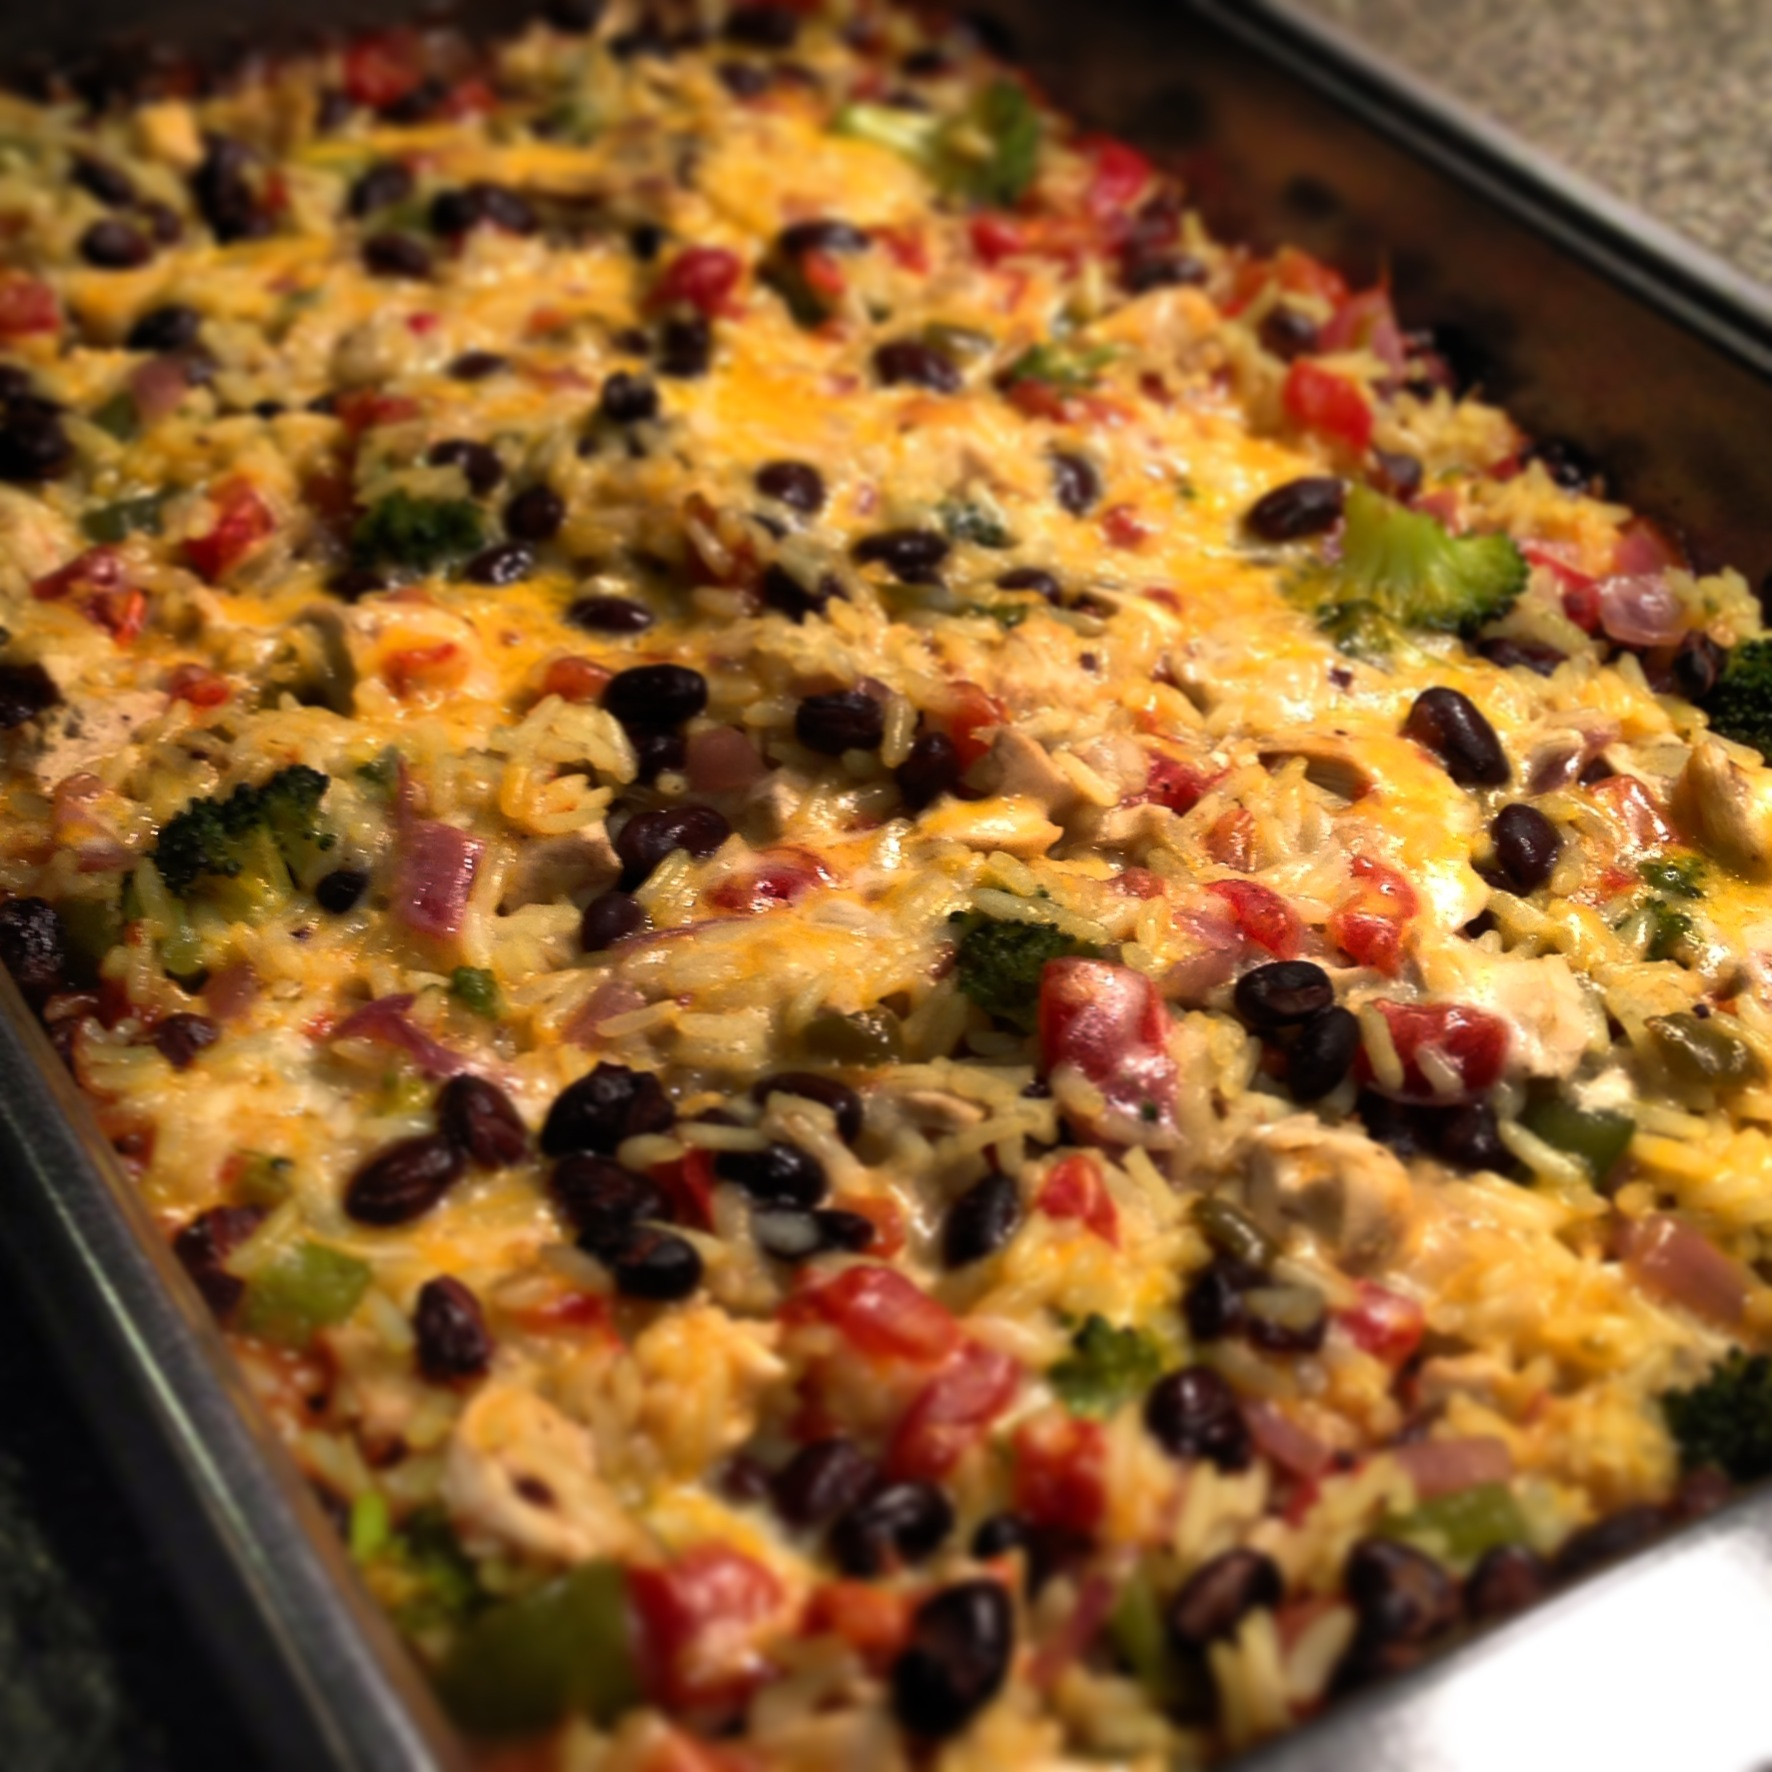 Baked Chicken, Rice And Black Beans Casserole